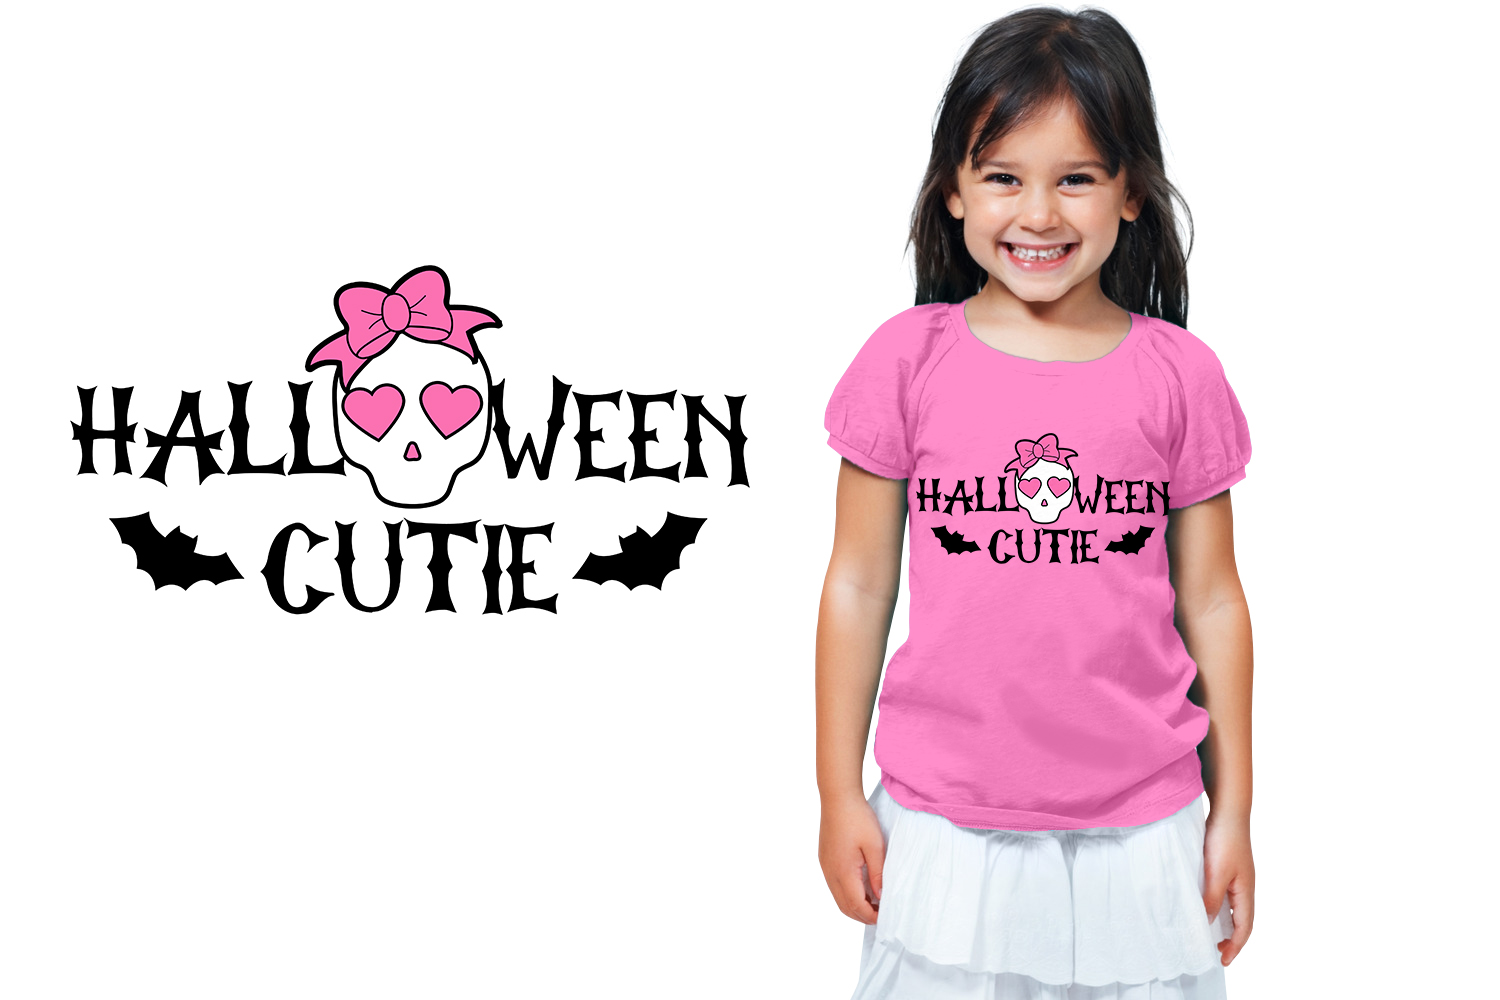 Halloween Cutie - Svg cut file for Girls example image 1